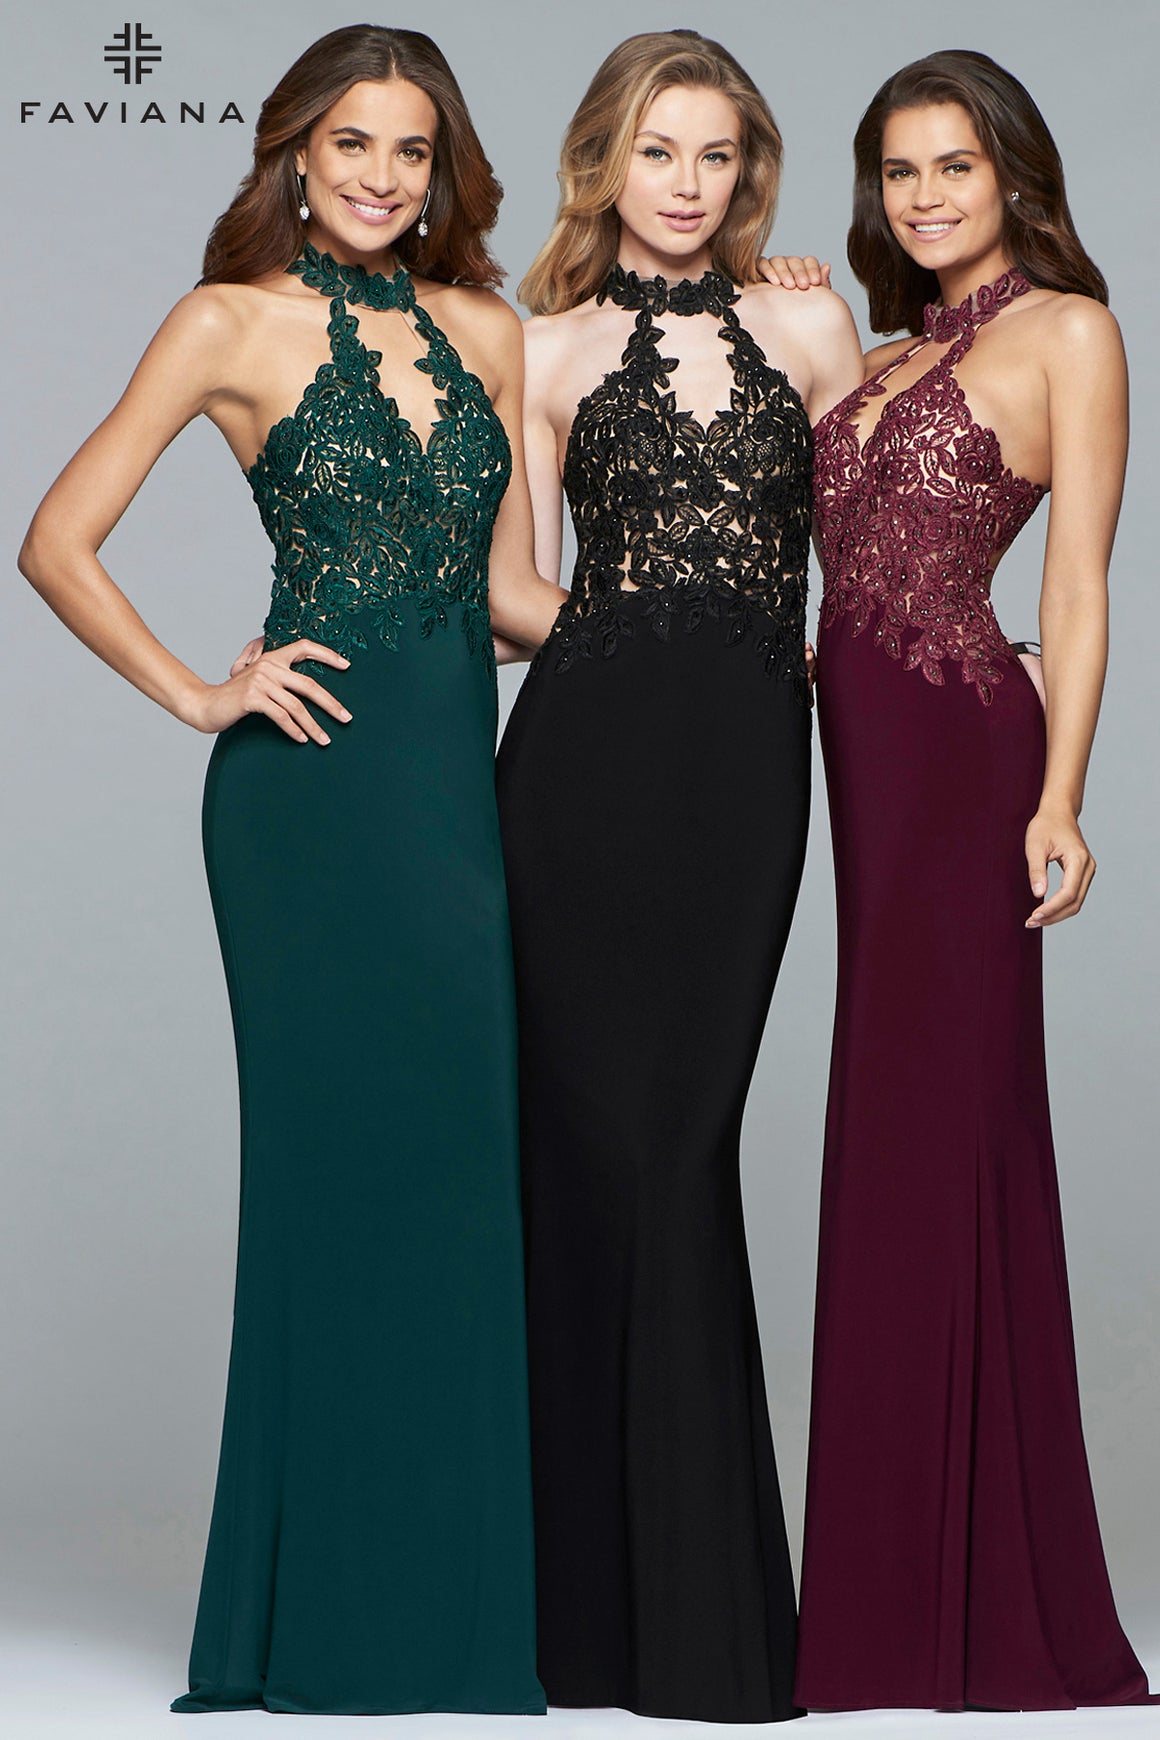 Faviana 7750  Lace Applique Halter Gown with Slit Front Jersey Skirt in Bordeaux